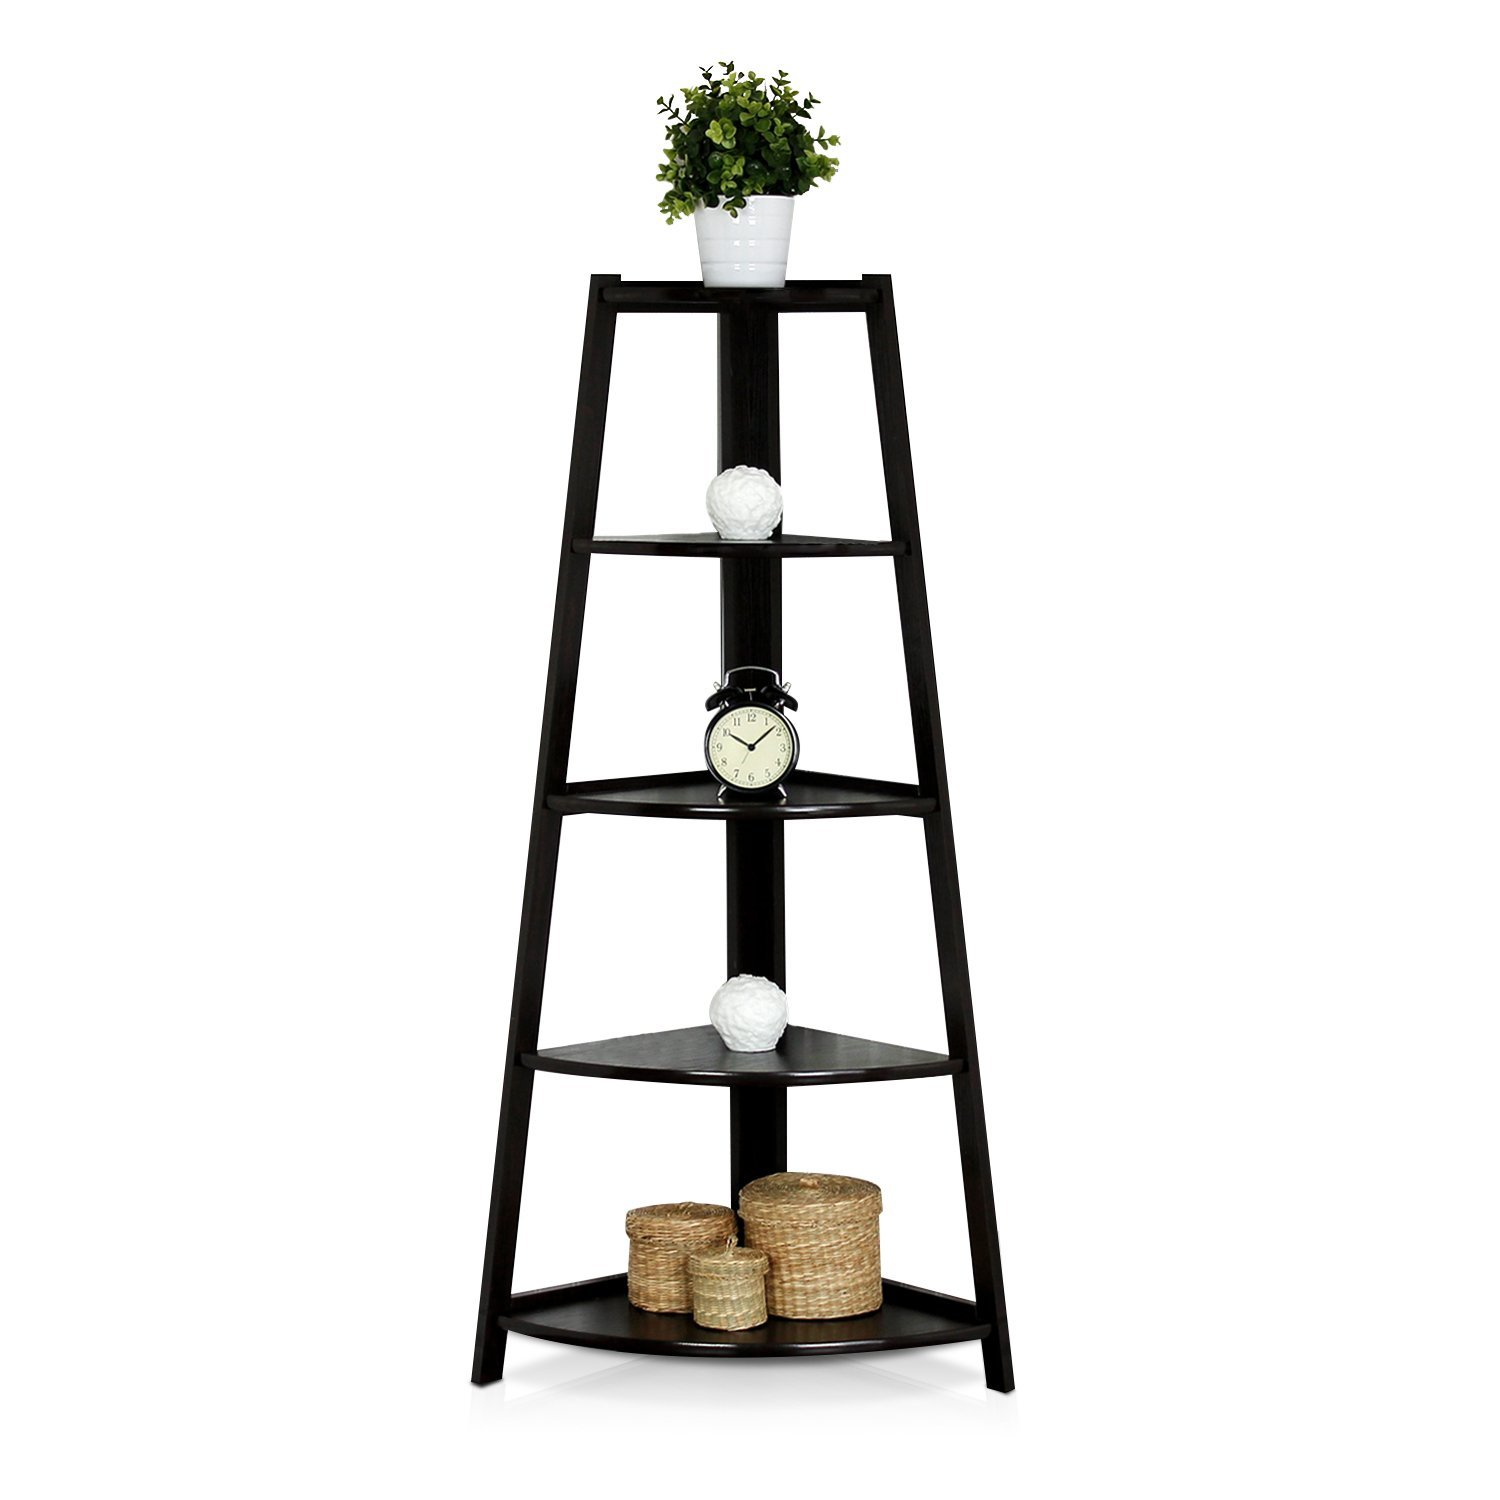 Top 12 Amazing Corner Ladder Shelves For Your Home Office